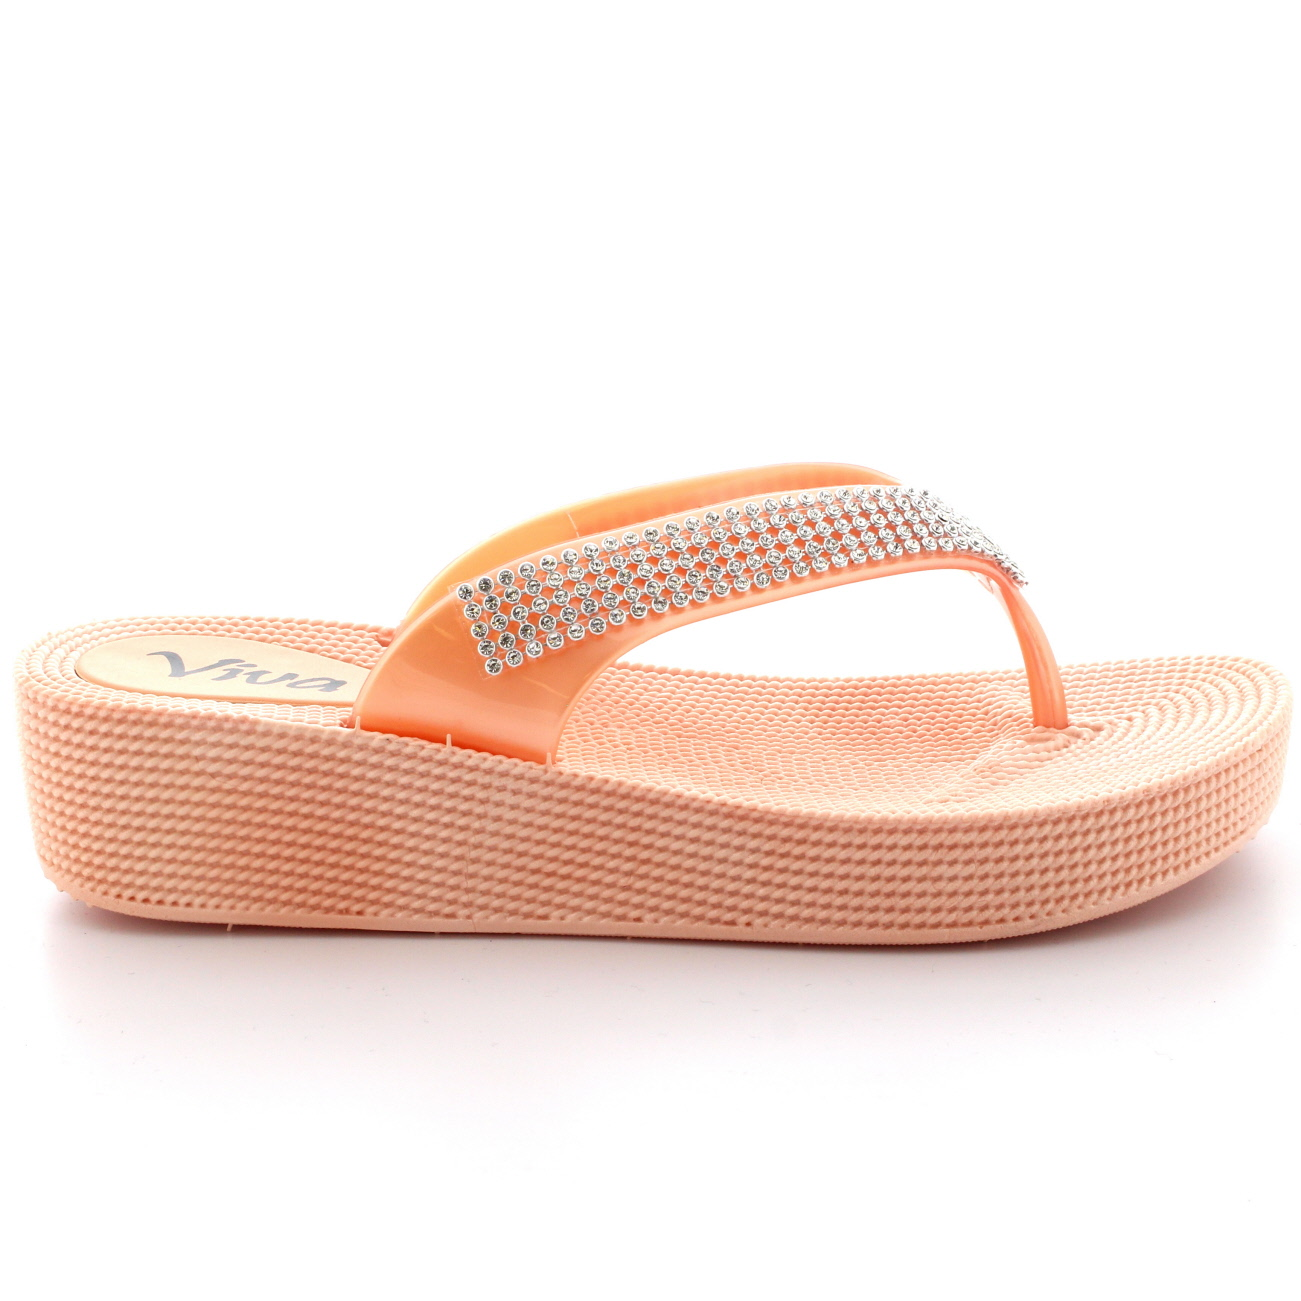 Womens Beach Holiday Thong Sandals Jelly Wedge Heel Diamante Flip ...